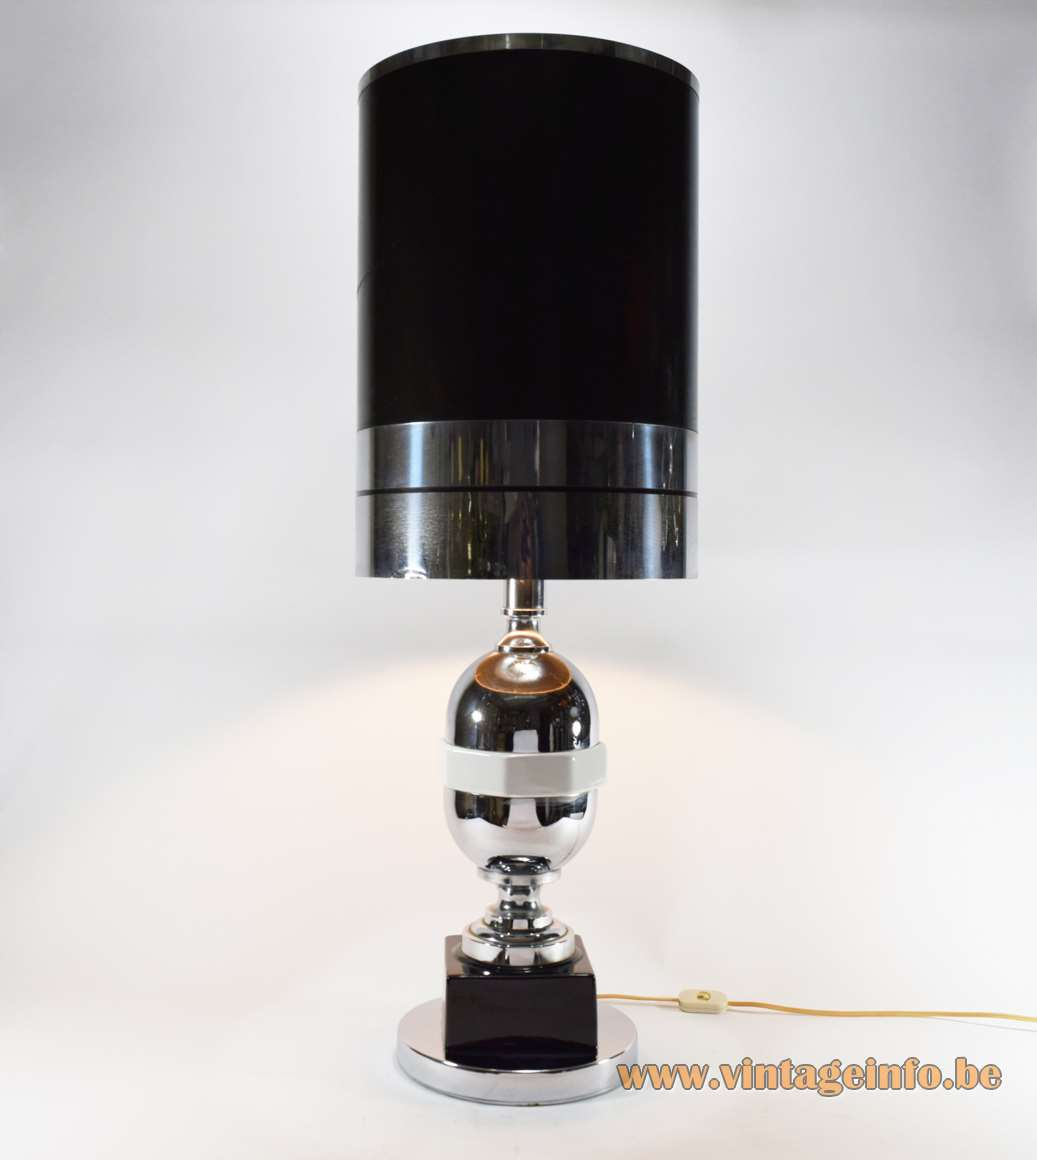 1970s geometric ceramics & chrome table lamp round base square hexagon porcelain tubular globe lampshade Massive Belgium